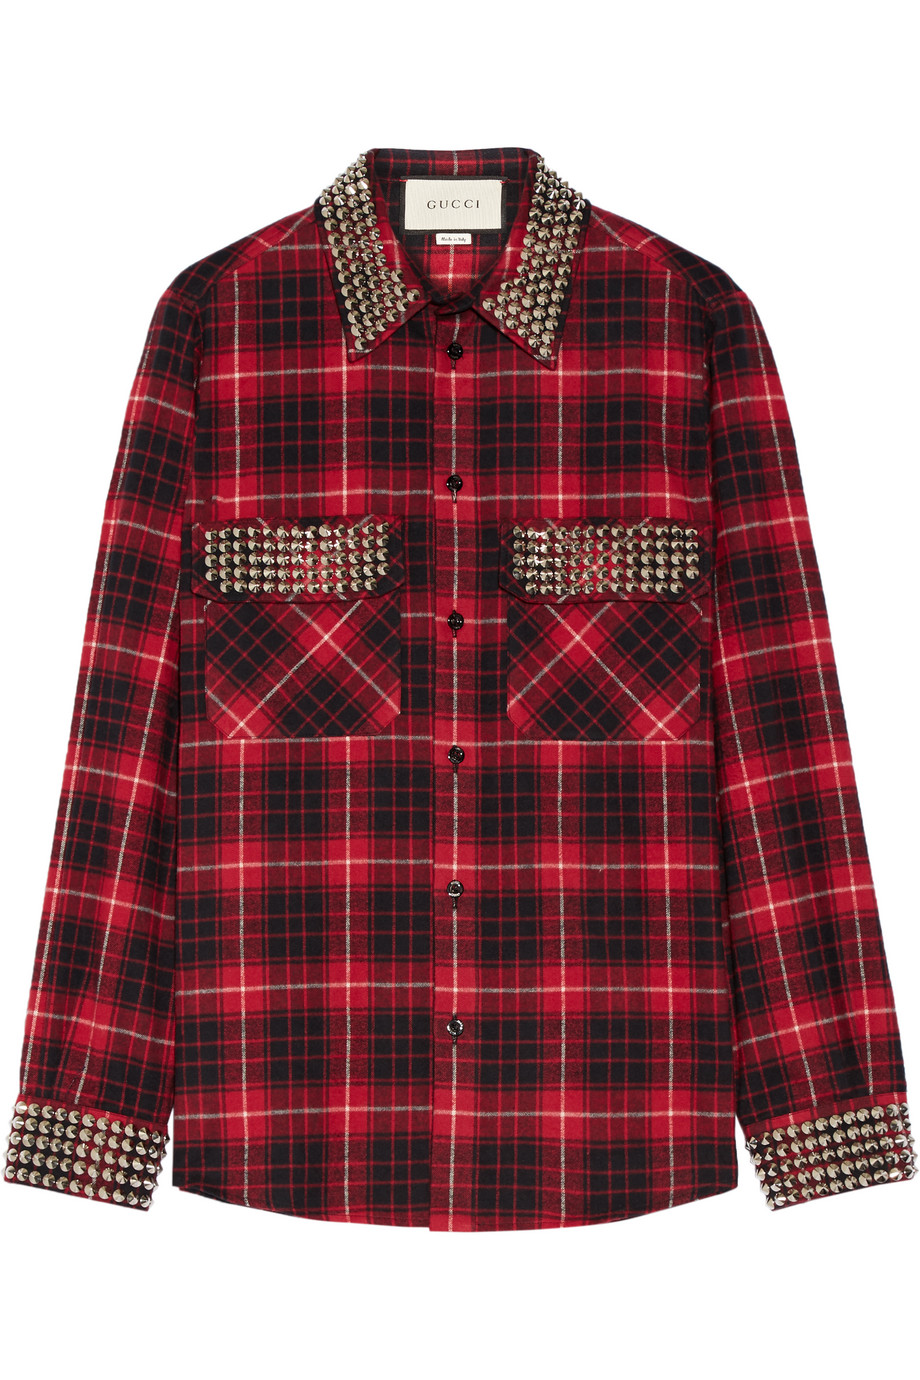 Gucci Embellished Plaid Cotton-Flannel Shirt, Red, Women's, Size: 46